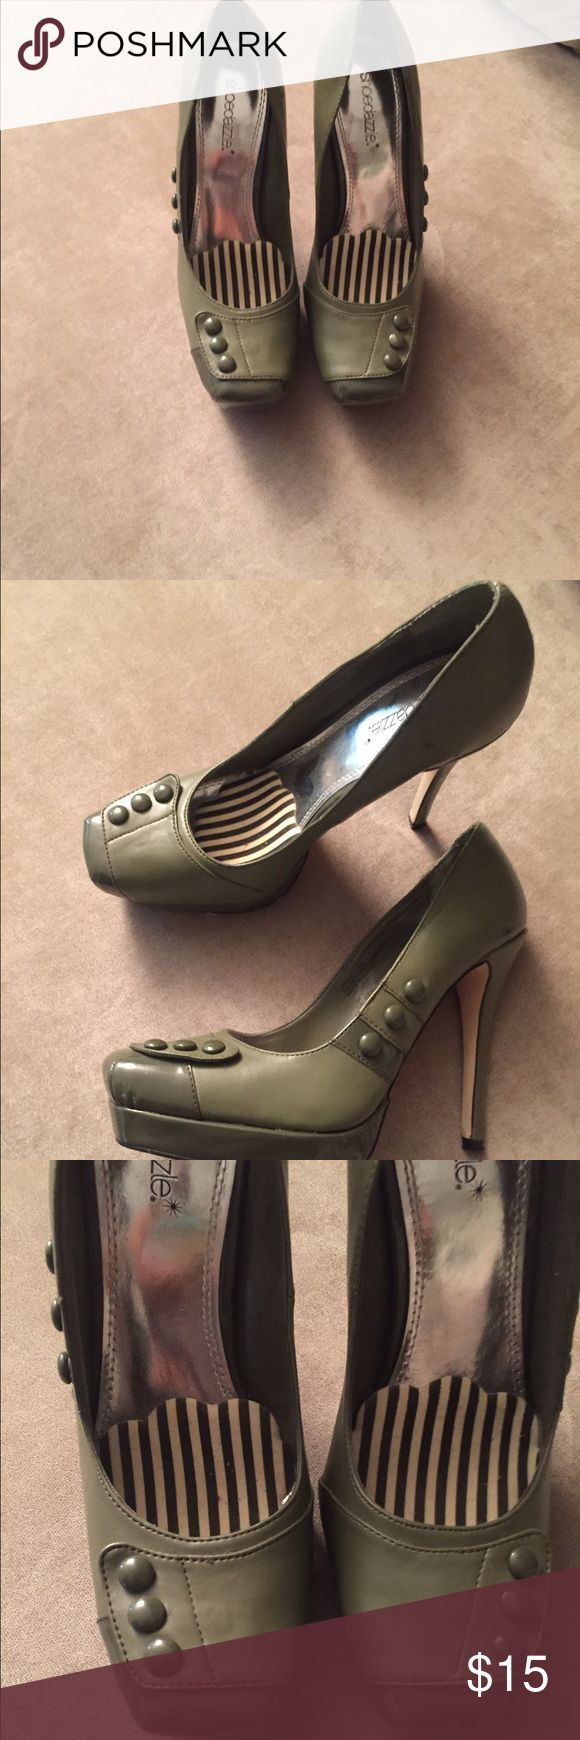 ⚡️FLASH SALE ⚡️Olive Green Stilettos These are heels from Shoe Dazzle. In a size 7.5, i only wore these shoes onve so in like new condition. Shoe Dazzle Shoes Heels